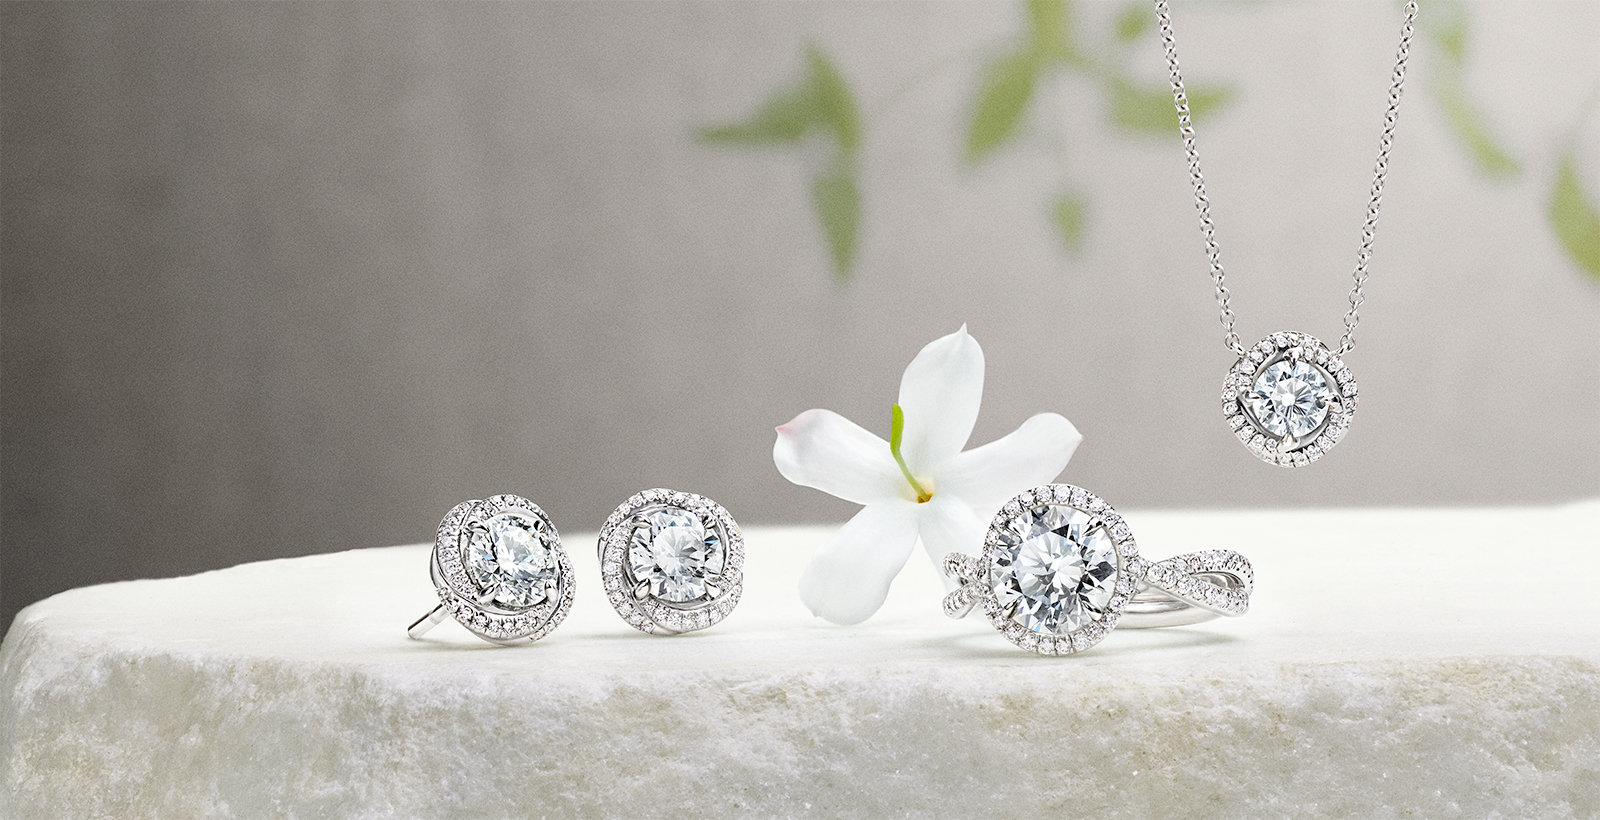 Diamond earrings, ring and a pendant in platinum with diamonds on a stone with jasmine.